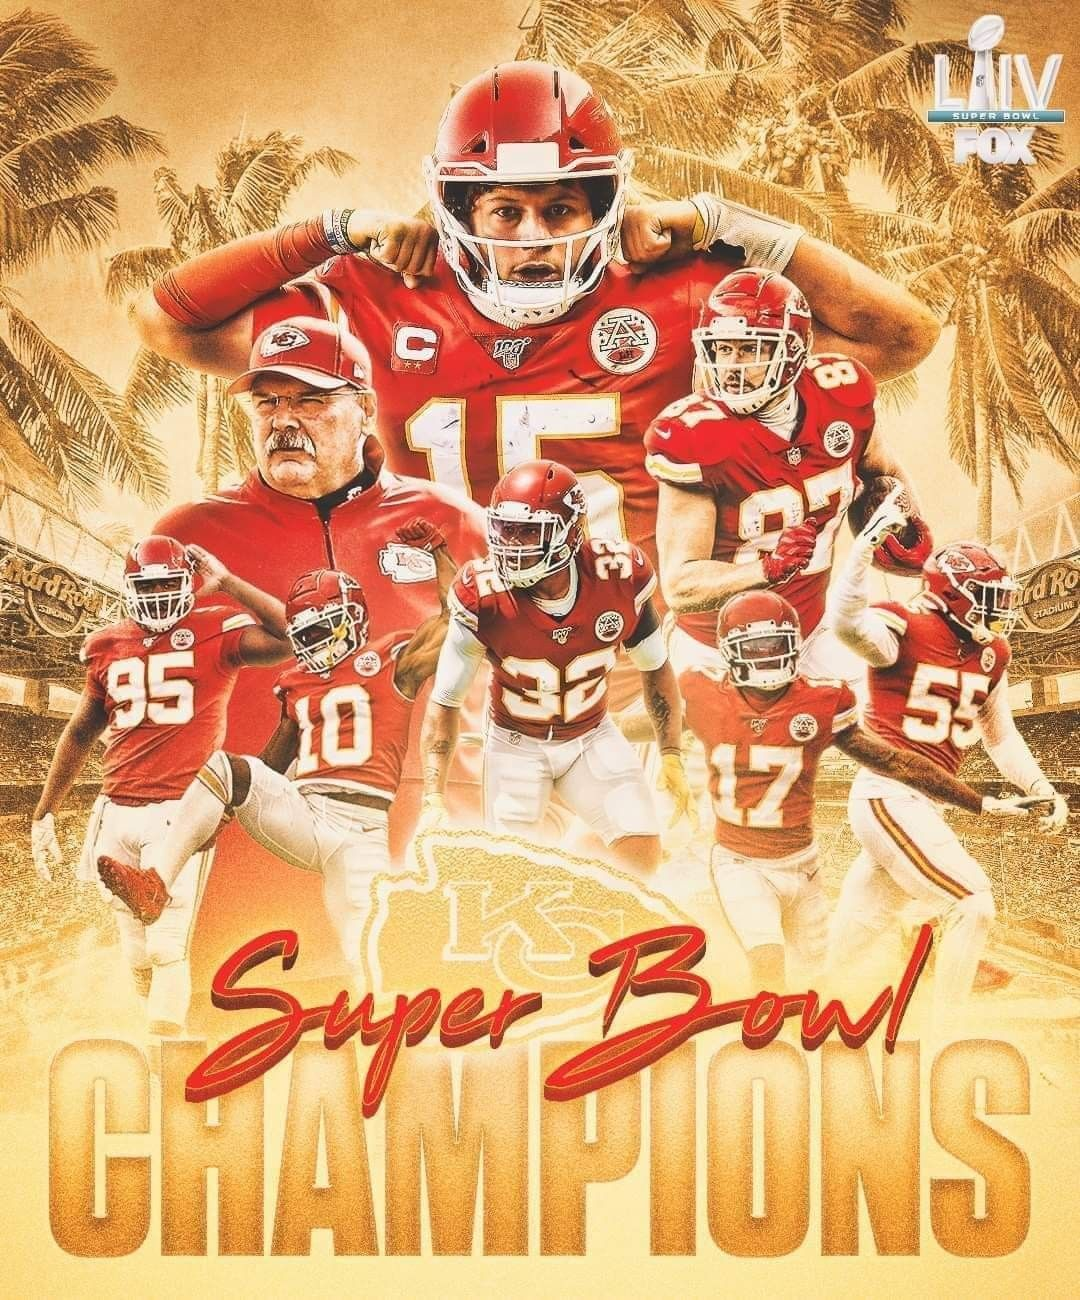 Pin By Cindy Pitochelli On 1 Team The Kansas City Chiefs In 2020 Chiefs Super Bowl Kansas City Chiefs Champs Posters